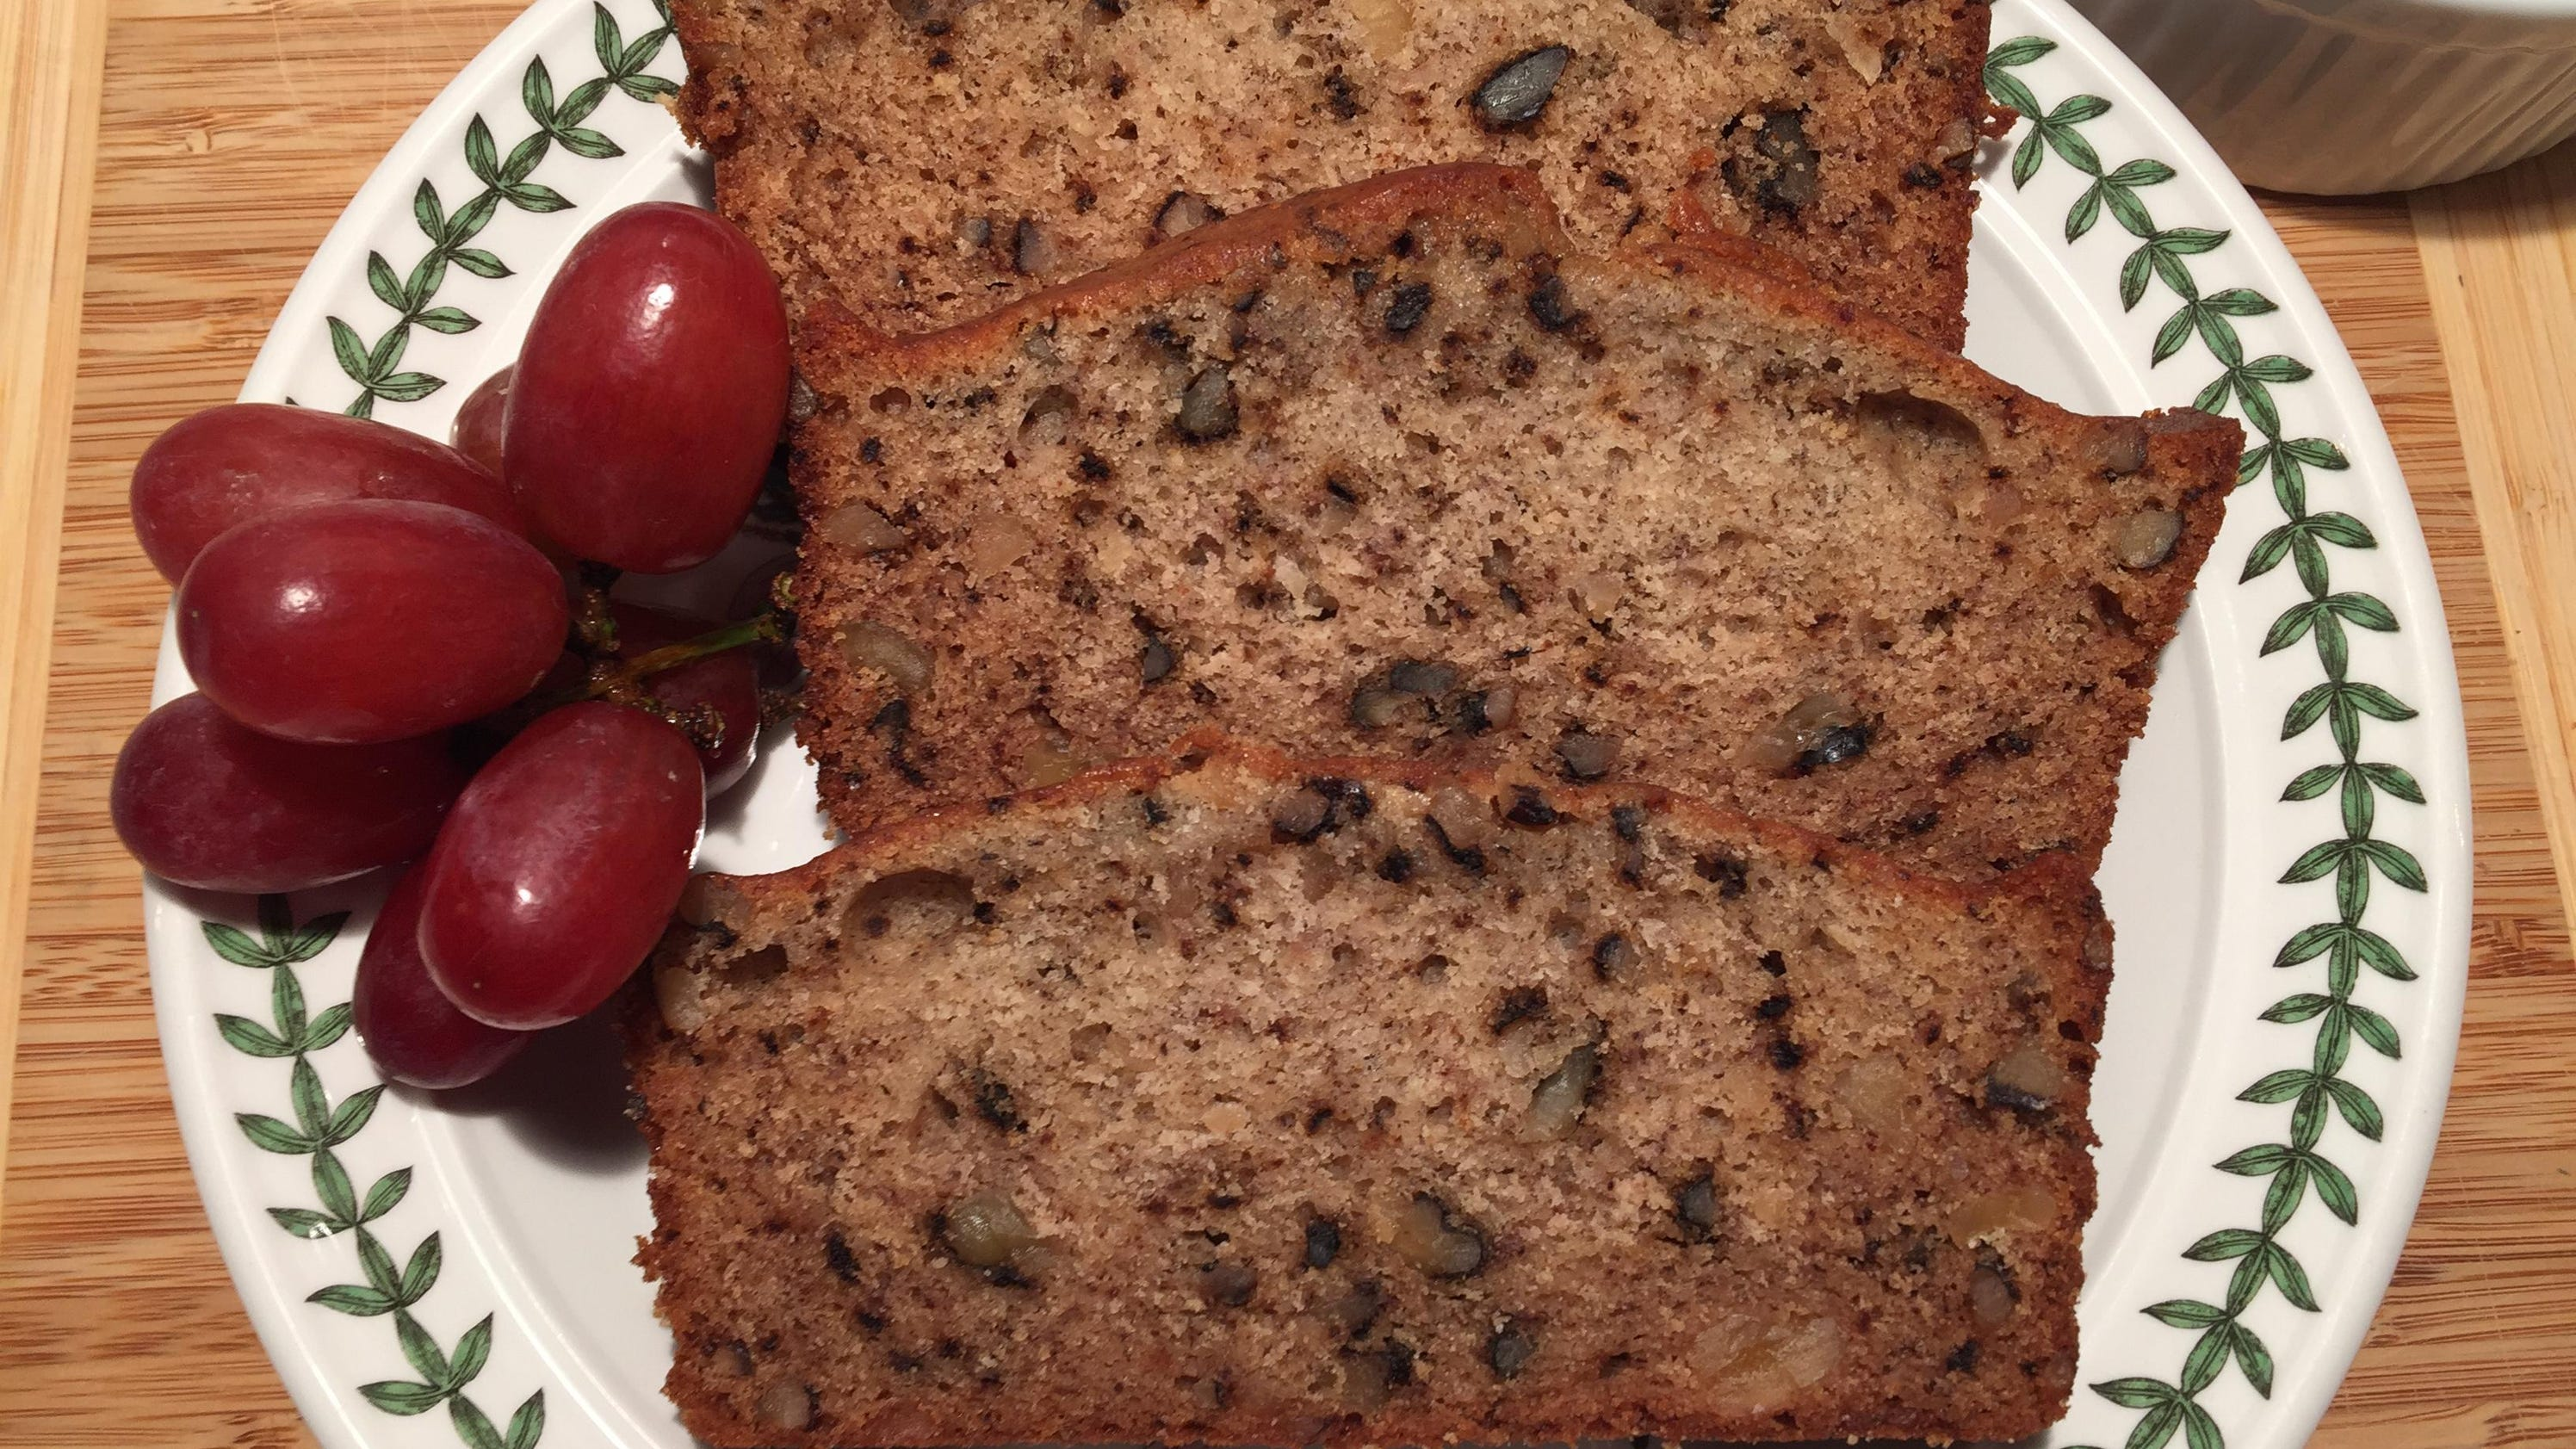 Food processor banana bread is quick and delicious forumfinder Choice Image